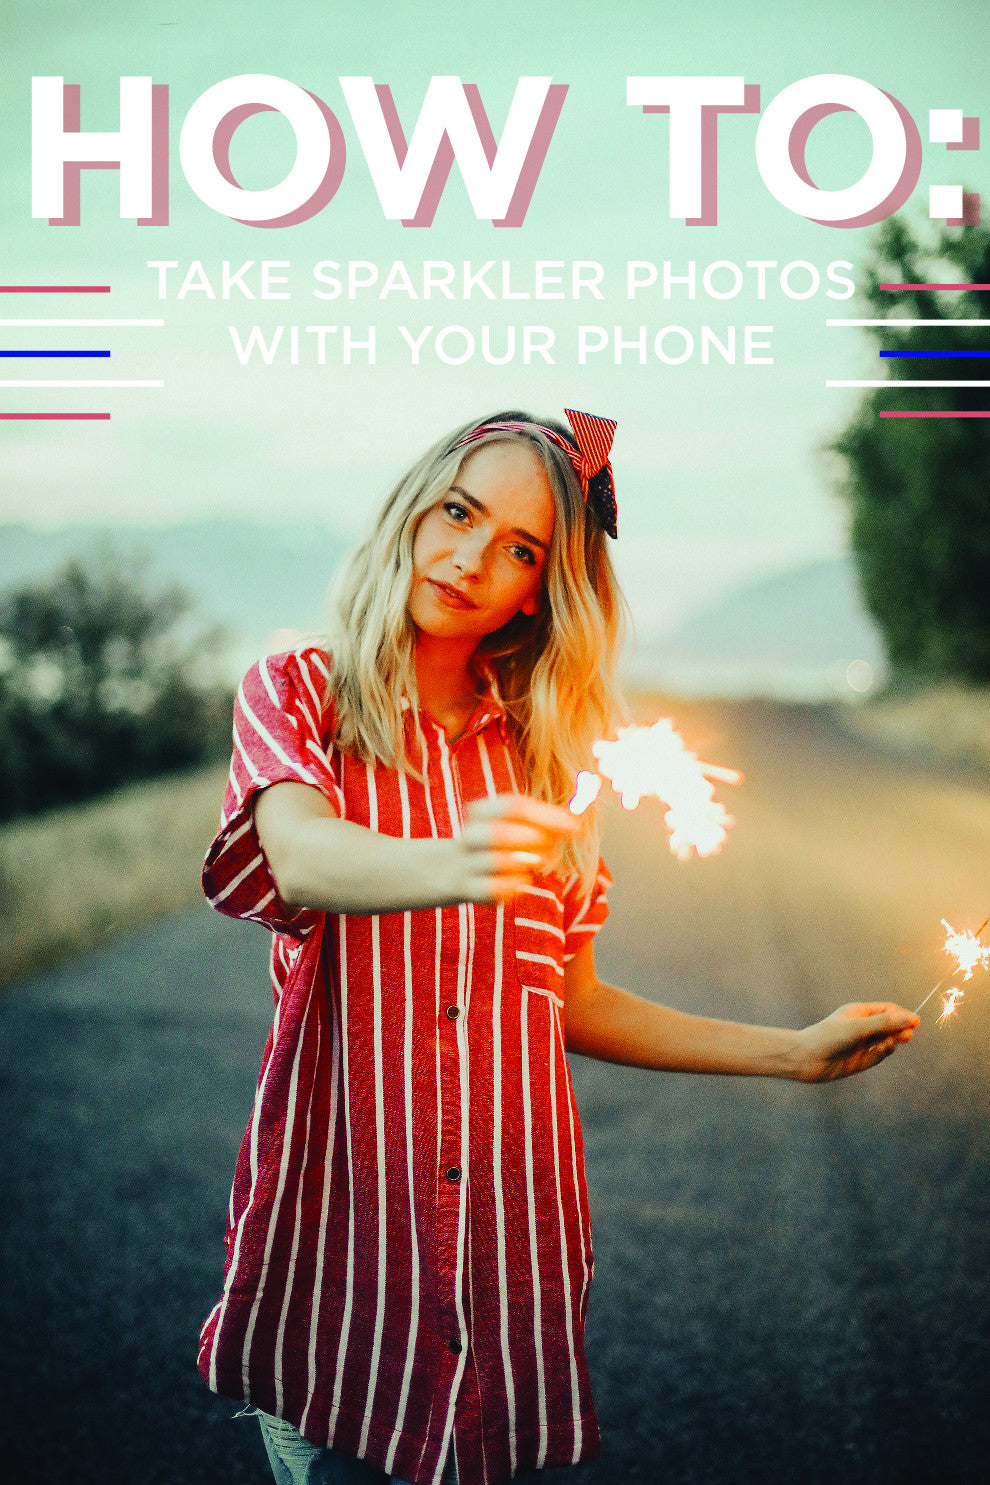 HOW TO: Take sparkler photos with your phone